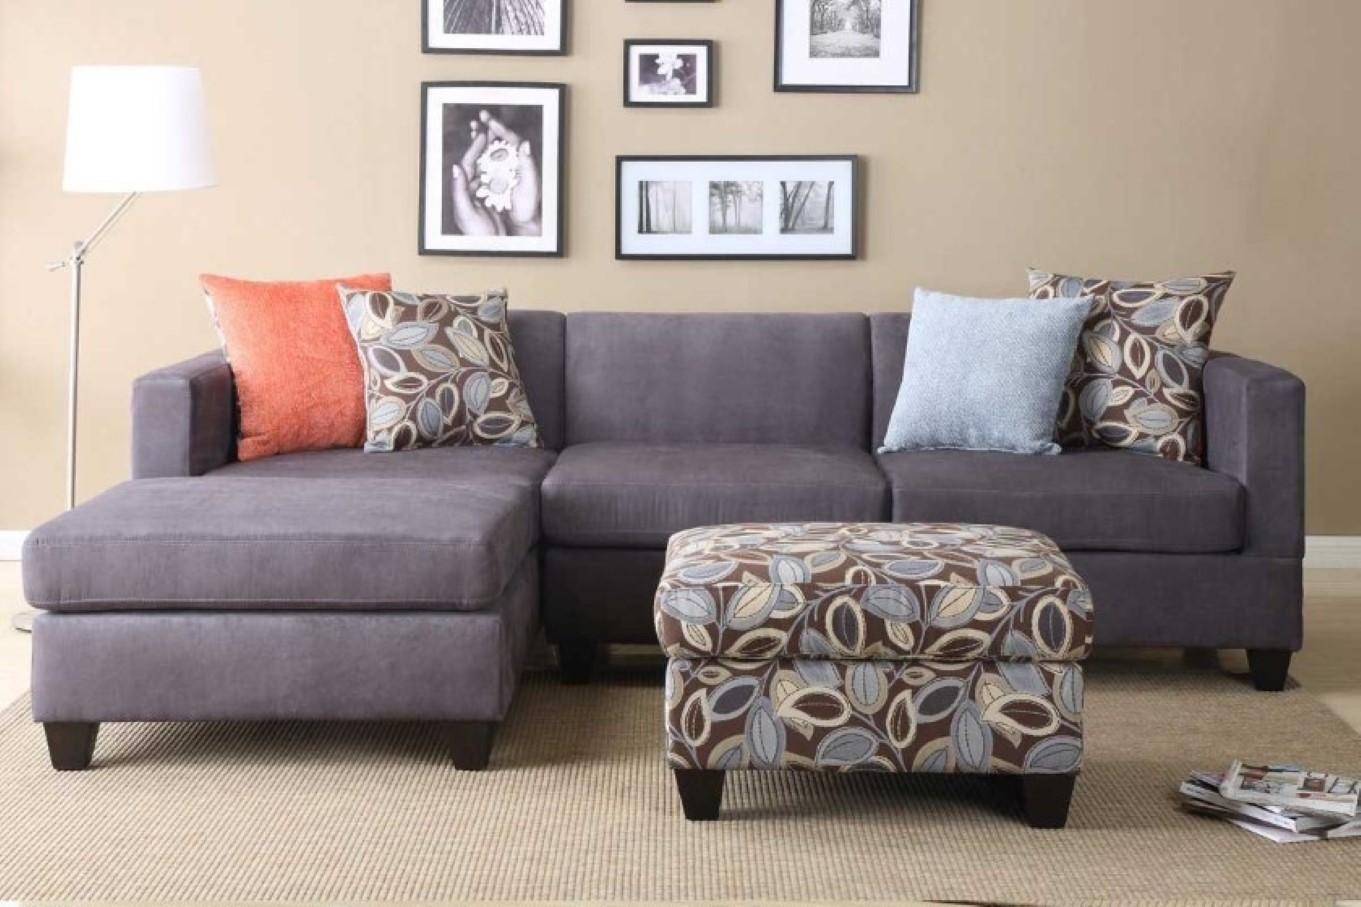 3 Piece Sectional Sleeper Sofa – Ansugallery With Regard To 3 Piece Sectional Sleeper Sofa (Image 3 of 15)